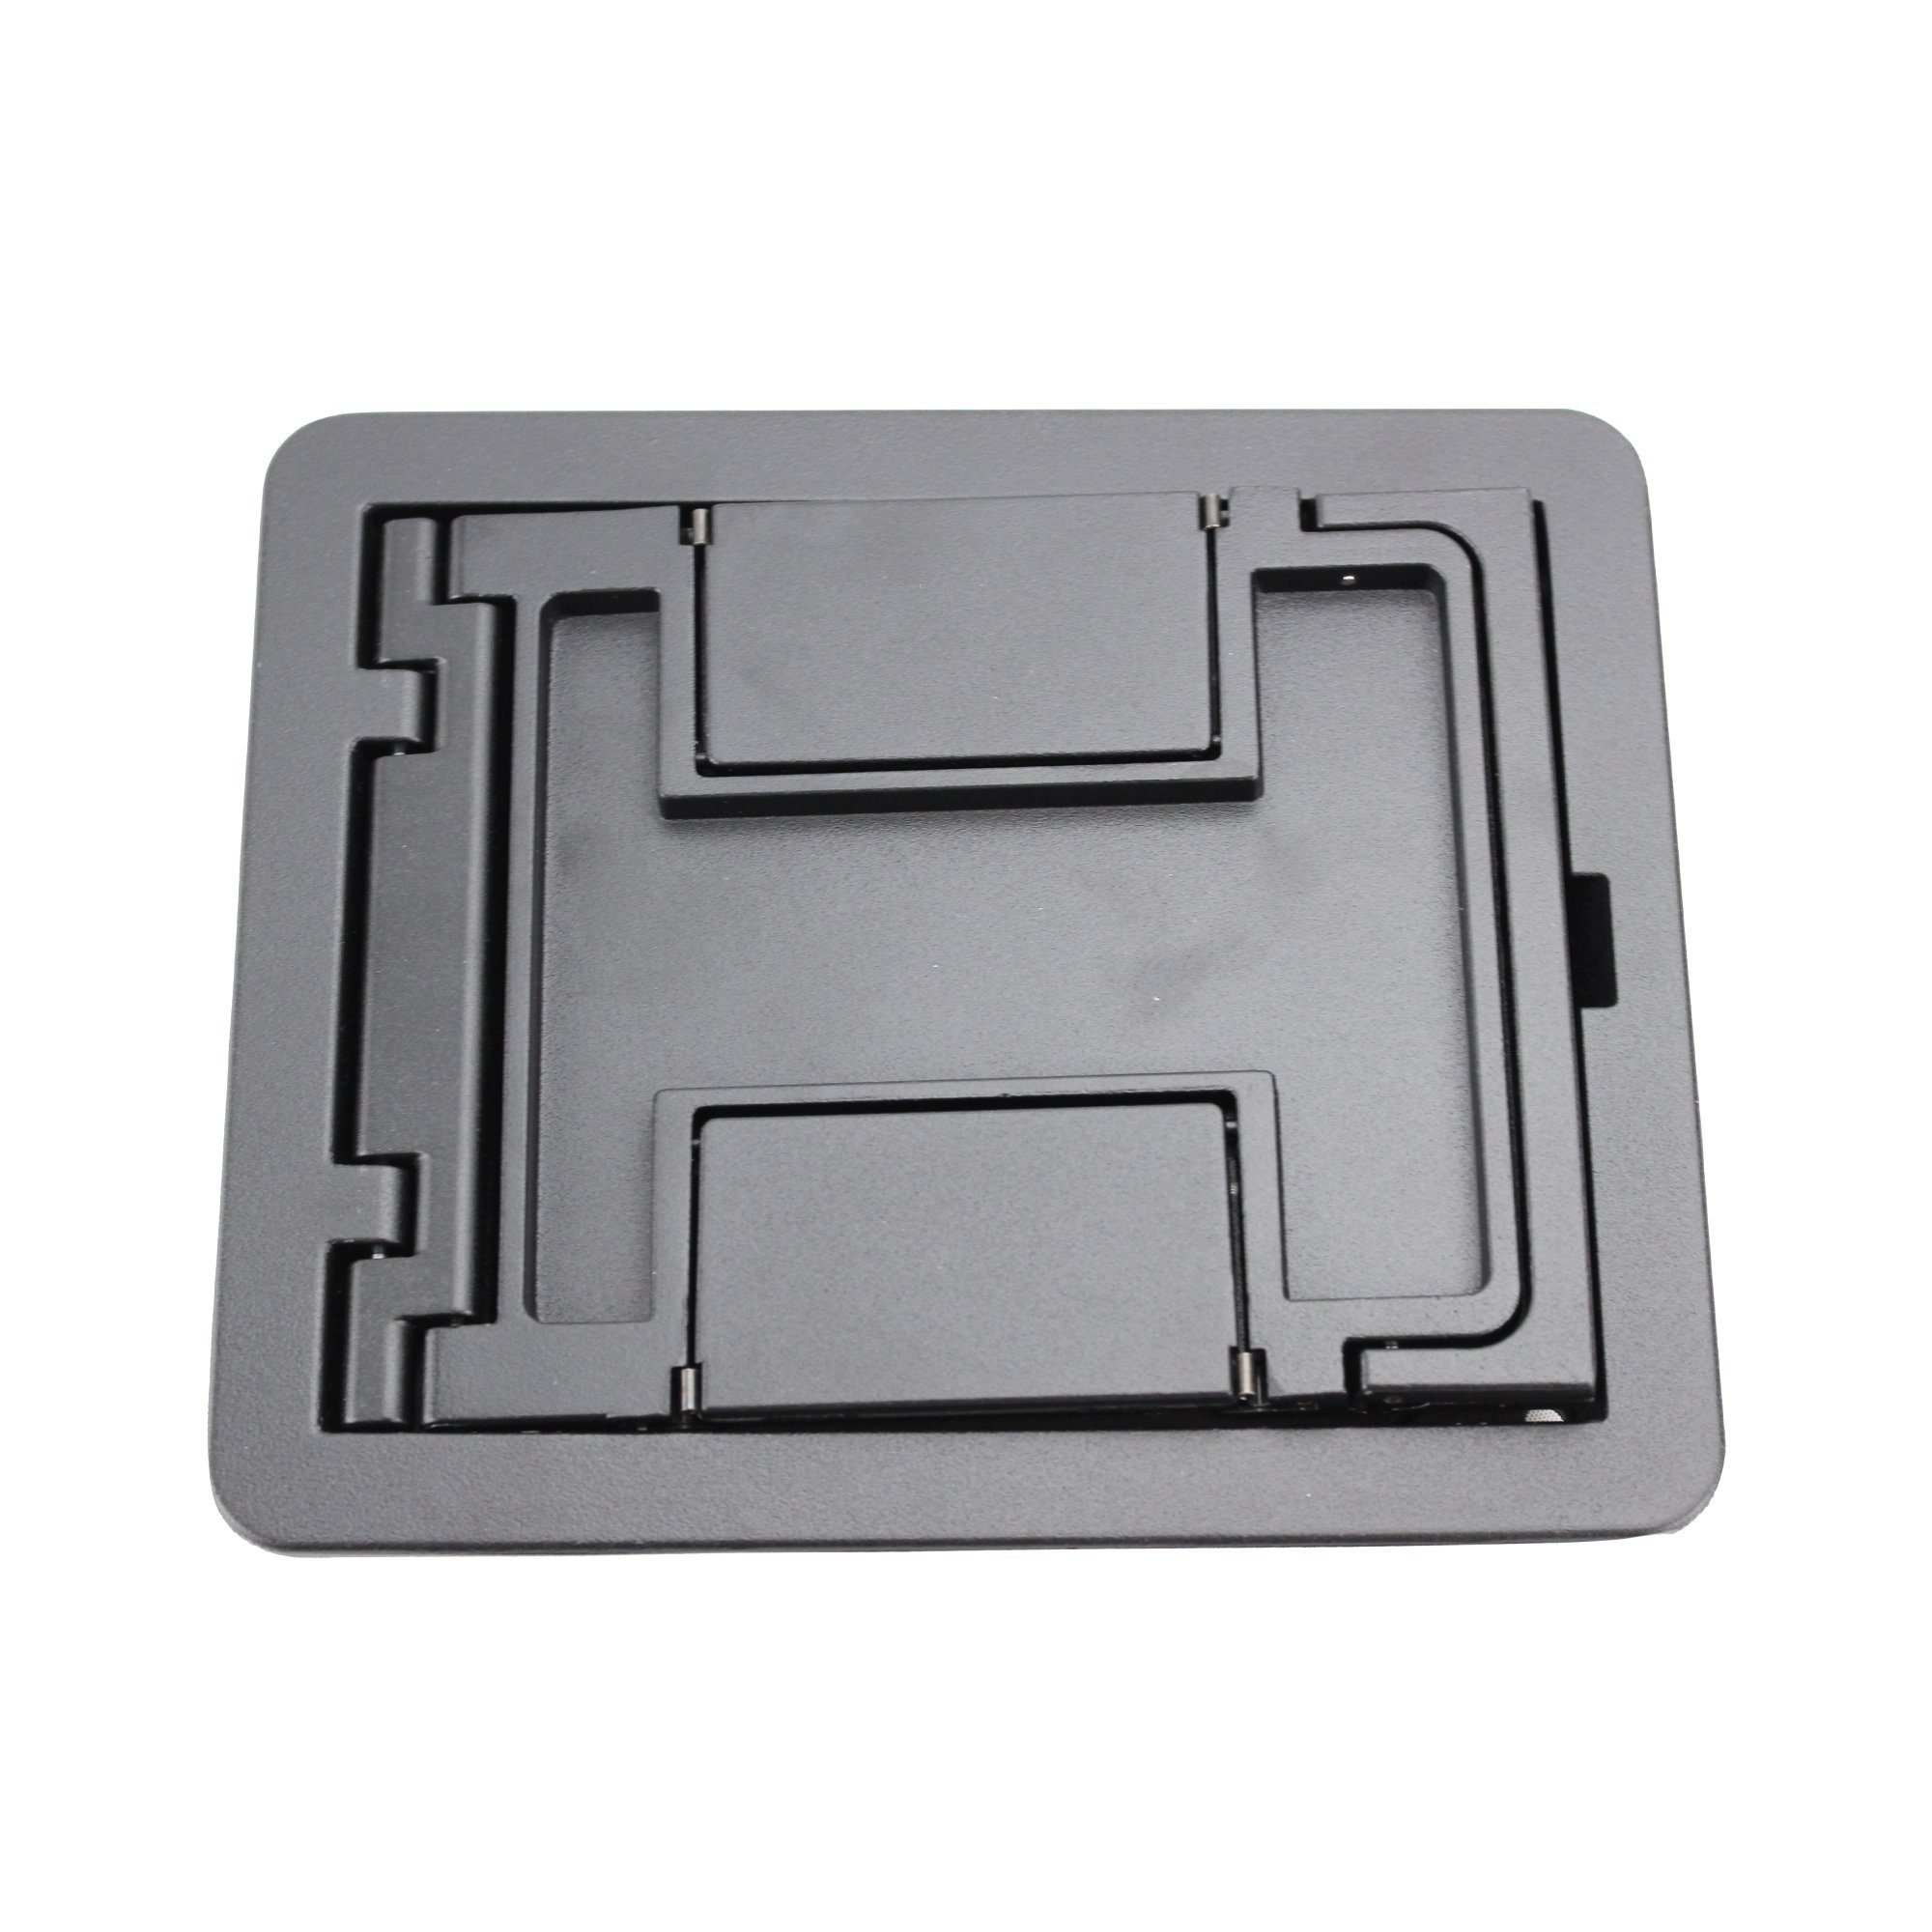 Wiremold FPCTCBK Die Cast Aluminum Flanged Cover Assembly 6-1/2 Inch x 7-3/4 Inch FloorPort™